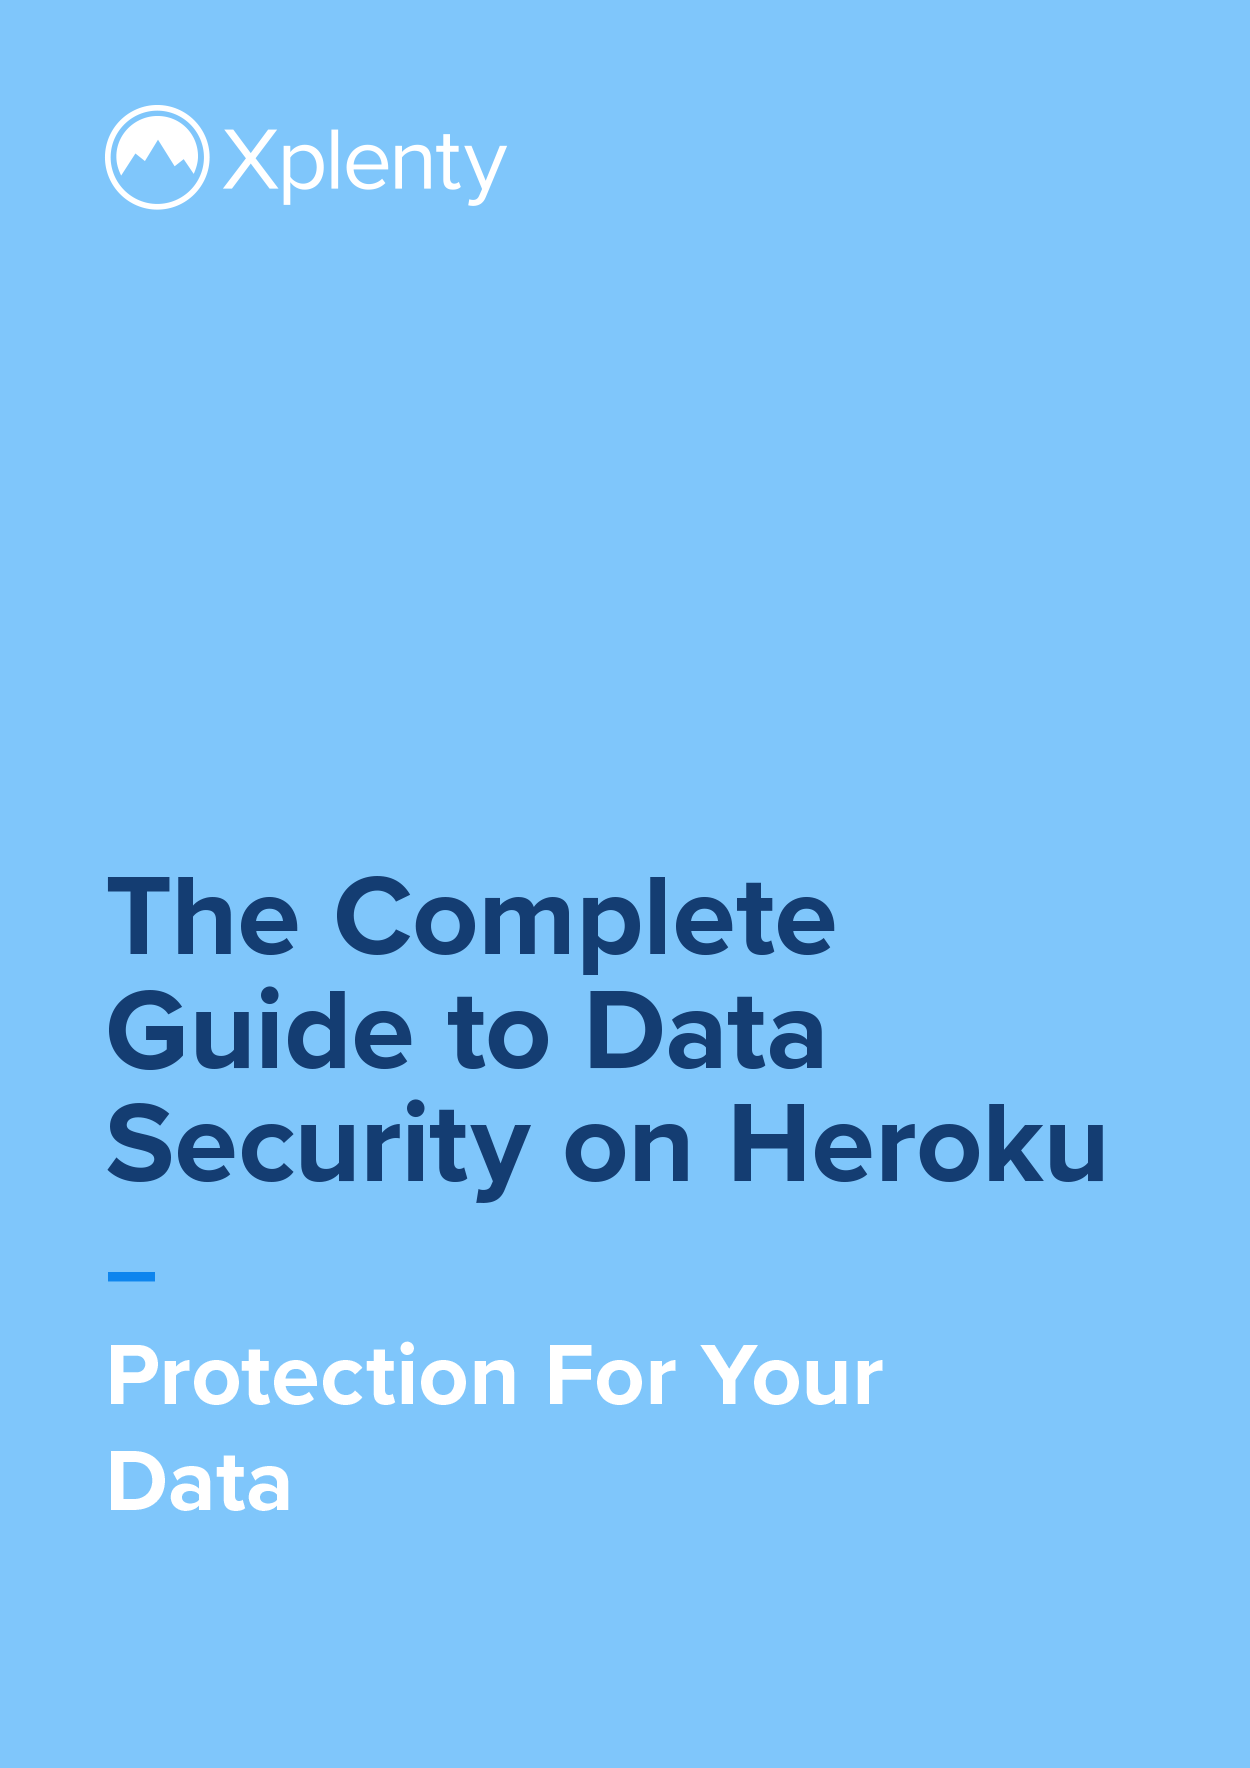 The Complete Guide to Data Security on Heroku